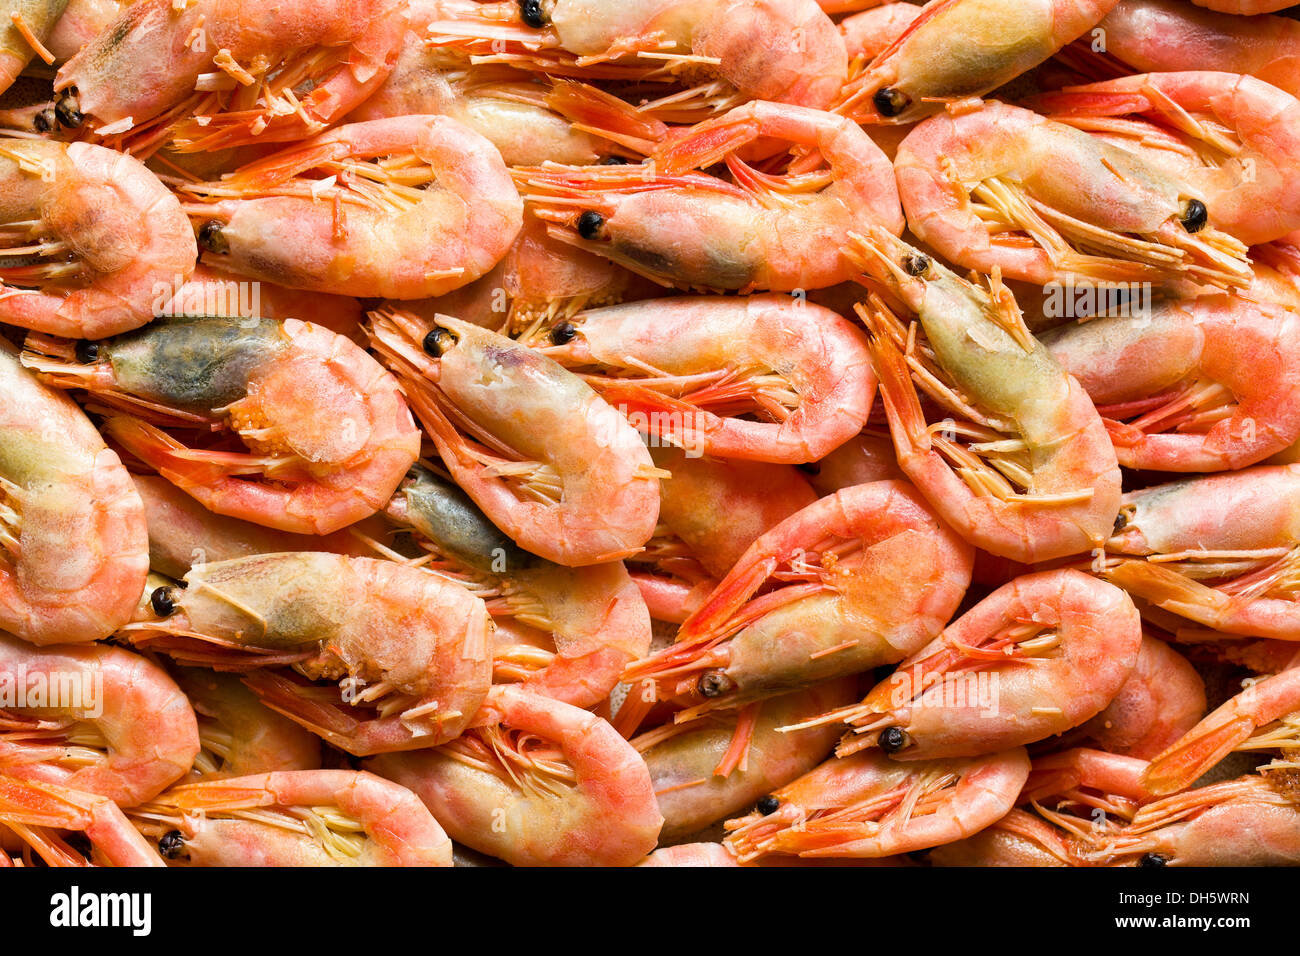 top view of the shrimps - Stock Image